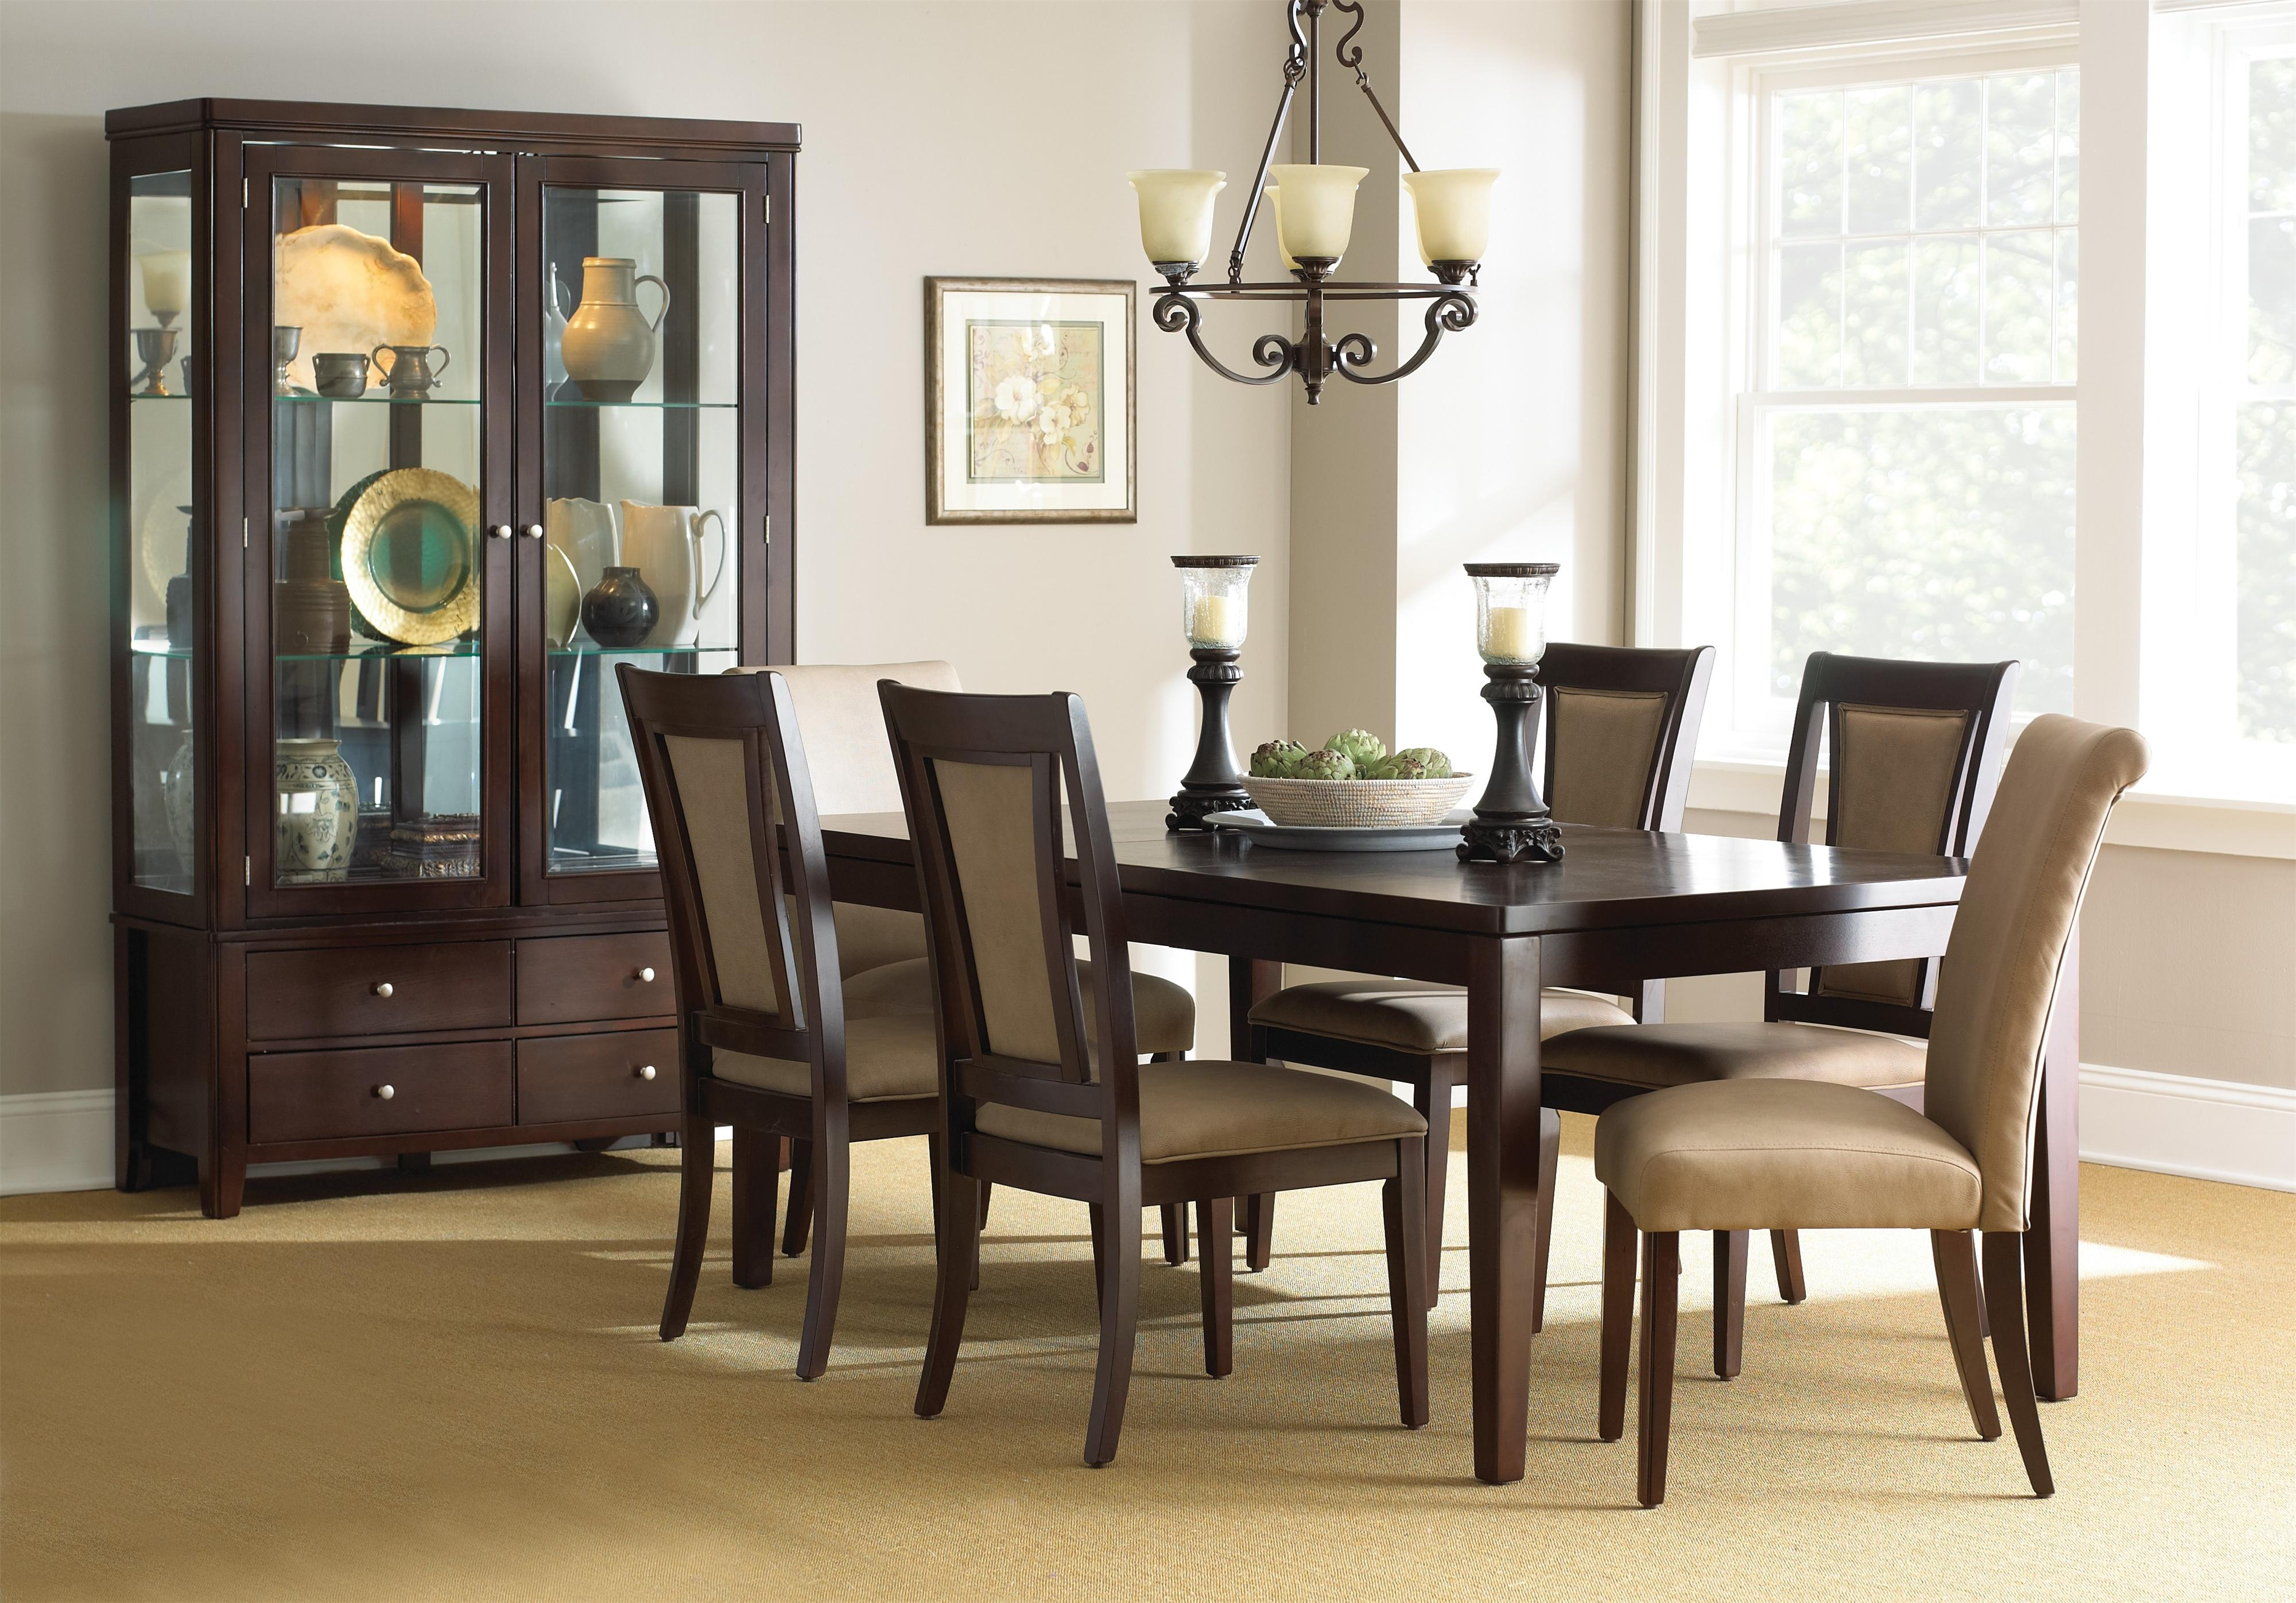 dining set with china cabinet. dining set with china cabinet with